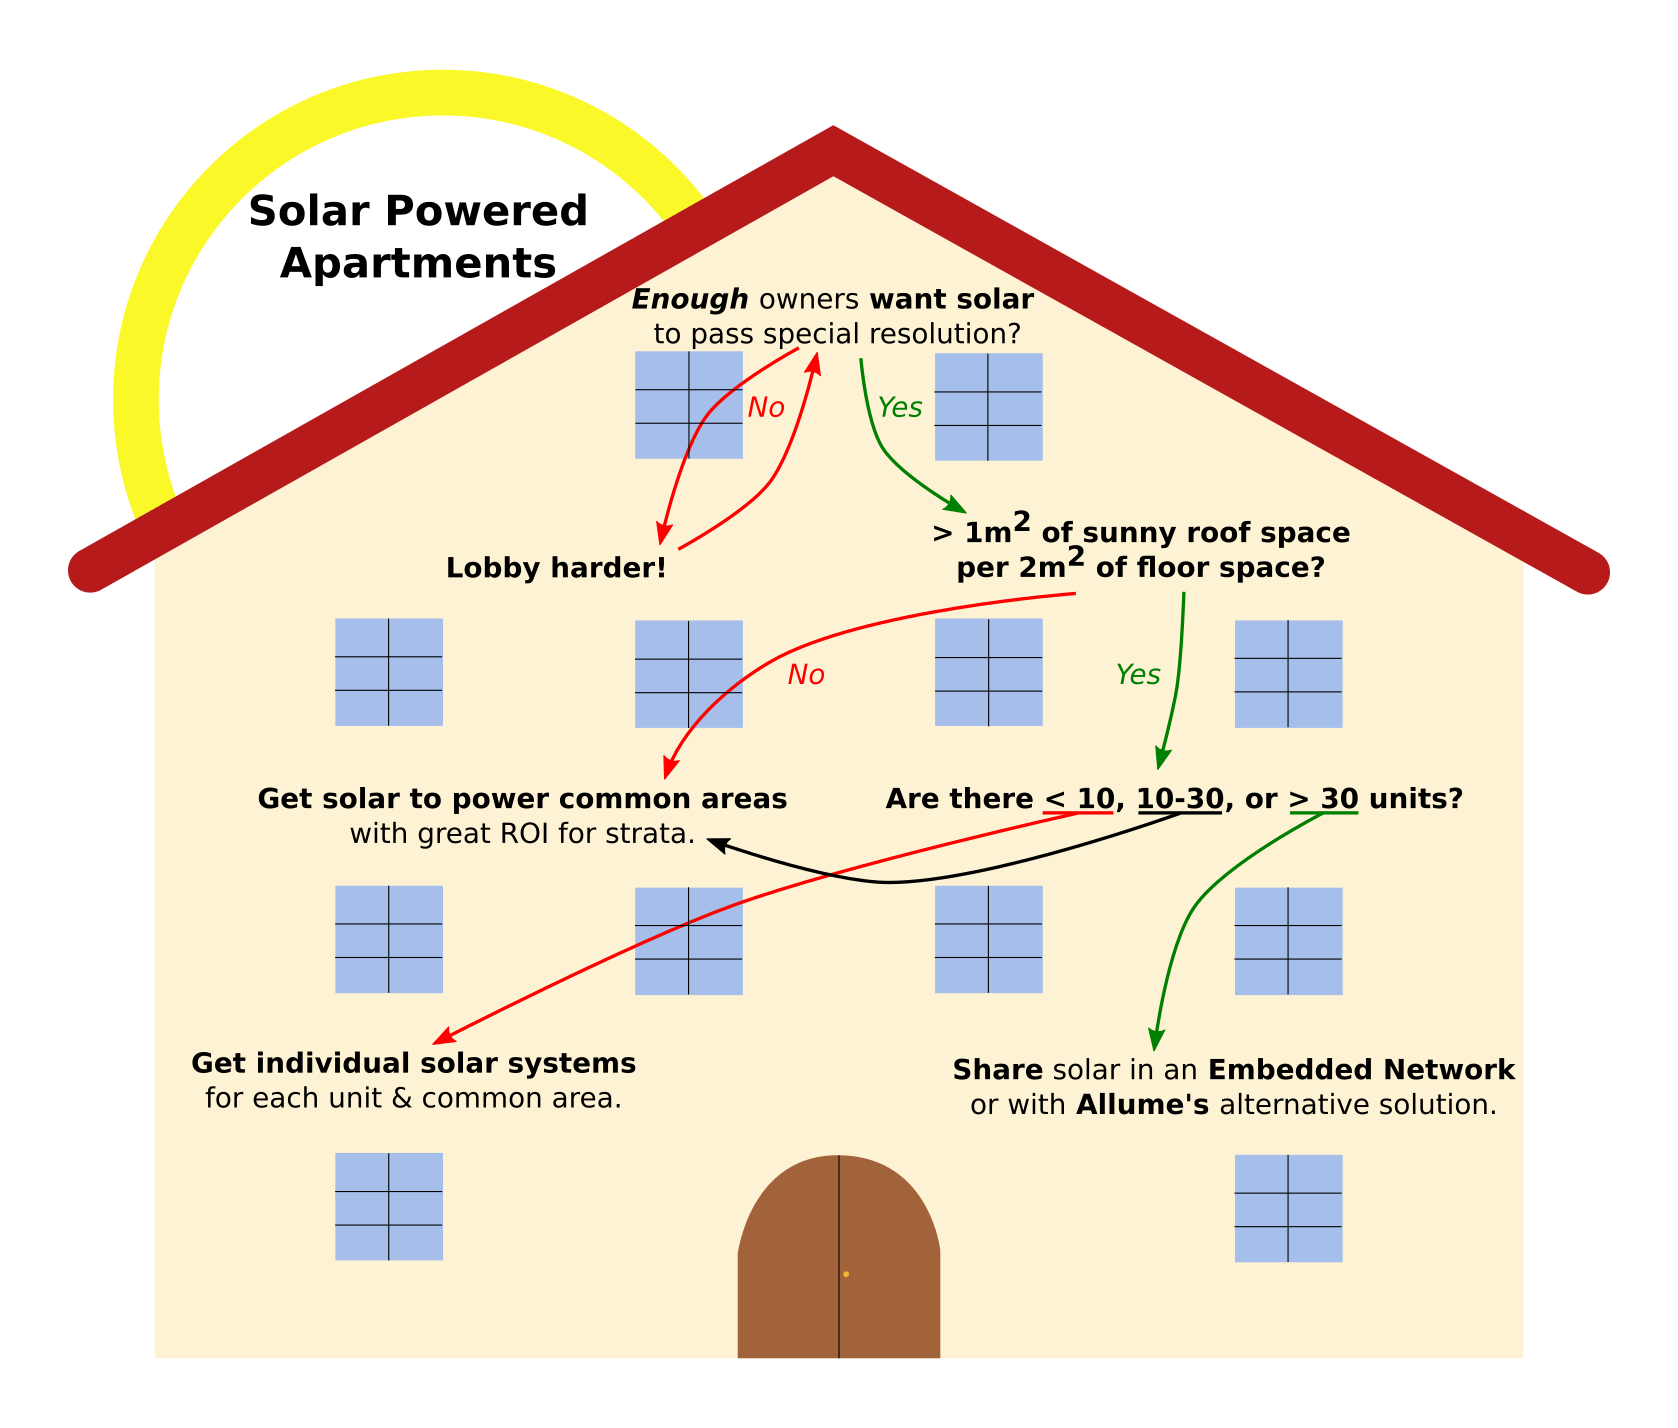 medium resolution of get in on the ground floor how apartments can join the solar boom solar water heater system diagram flickr photo sharing